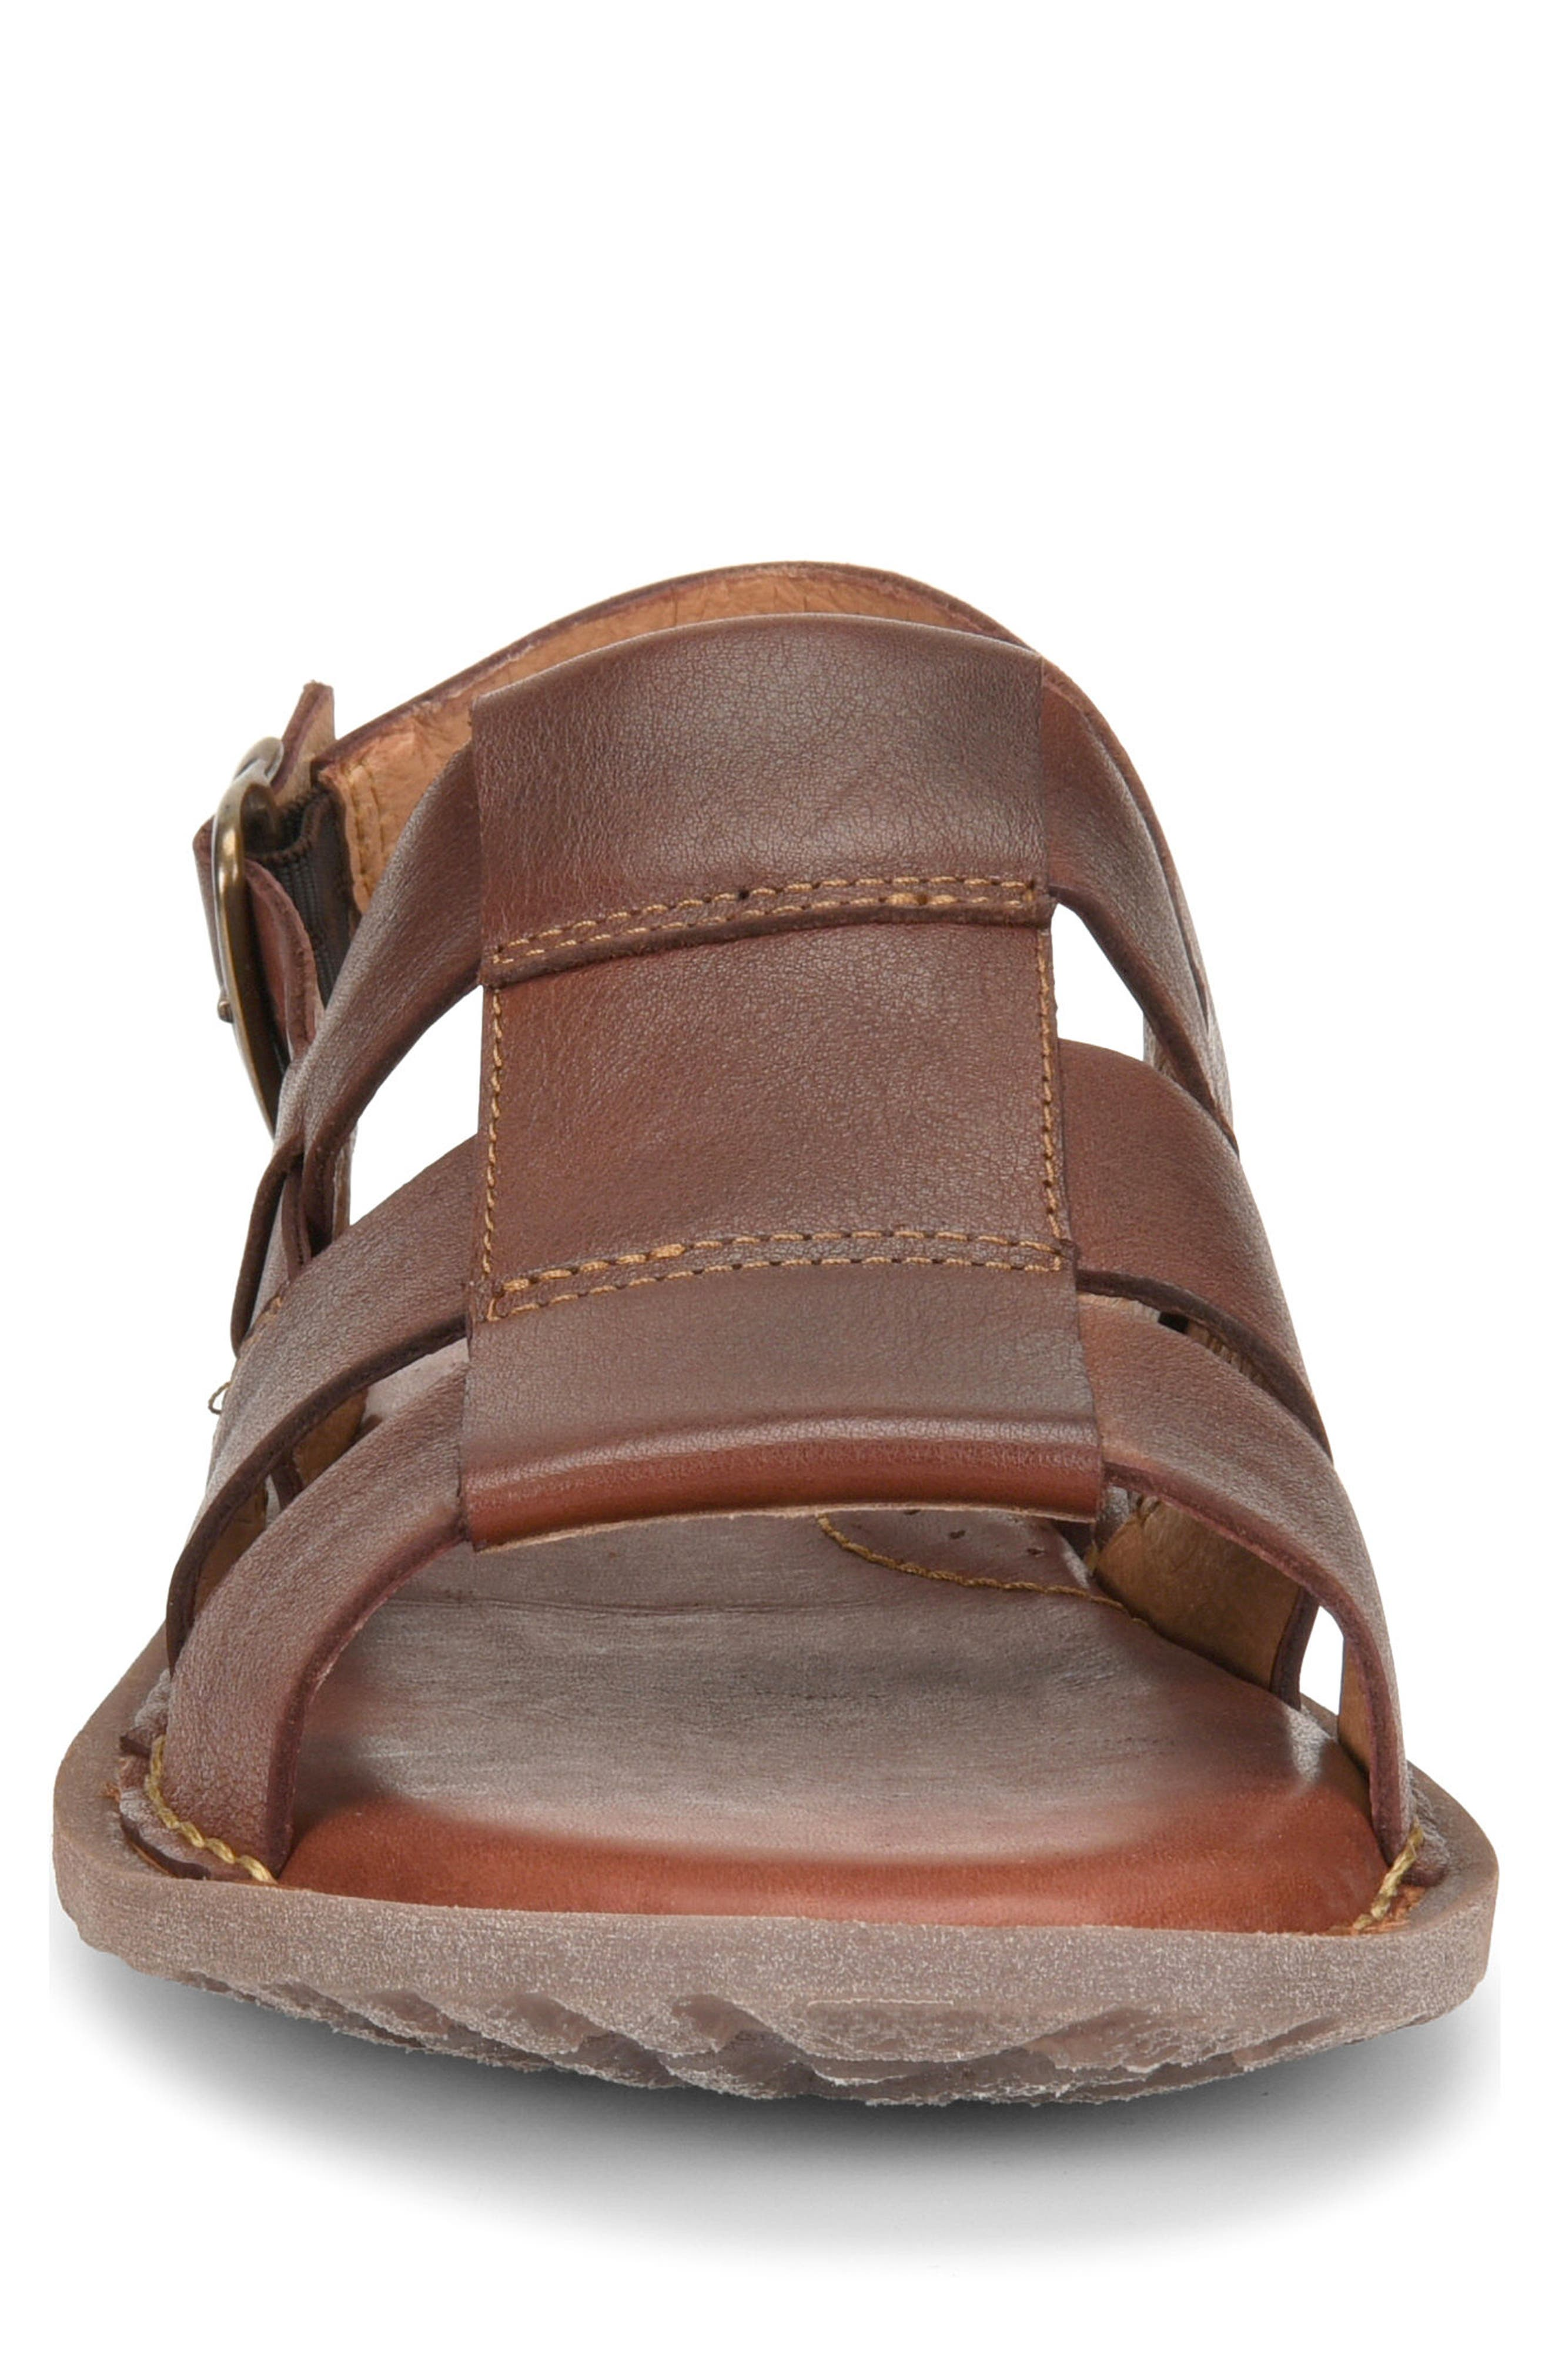 Surf Fisherman Sandal,                             Alternate thumbnail 4, color,                             BROWN LEATHER